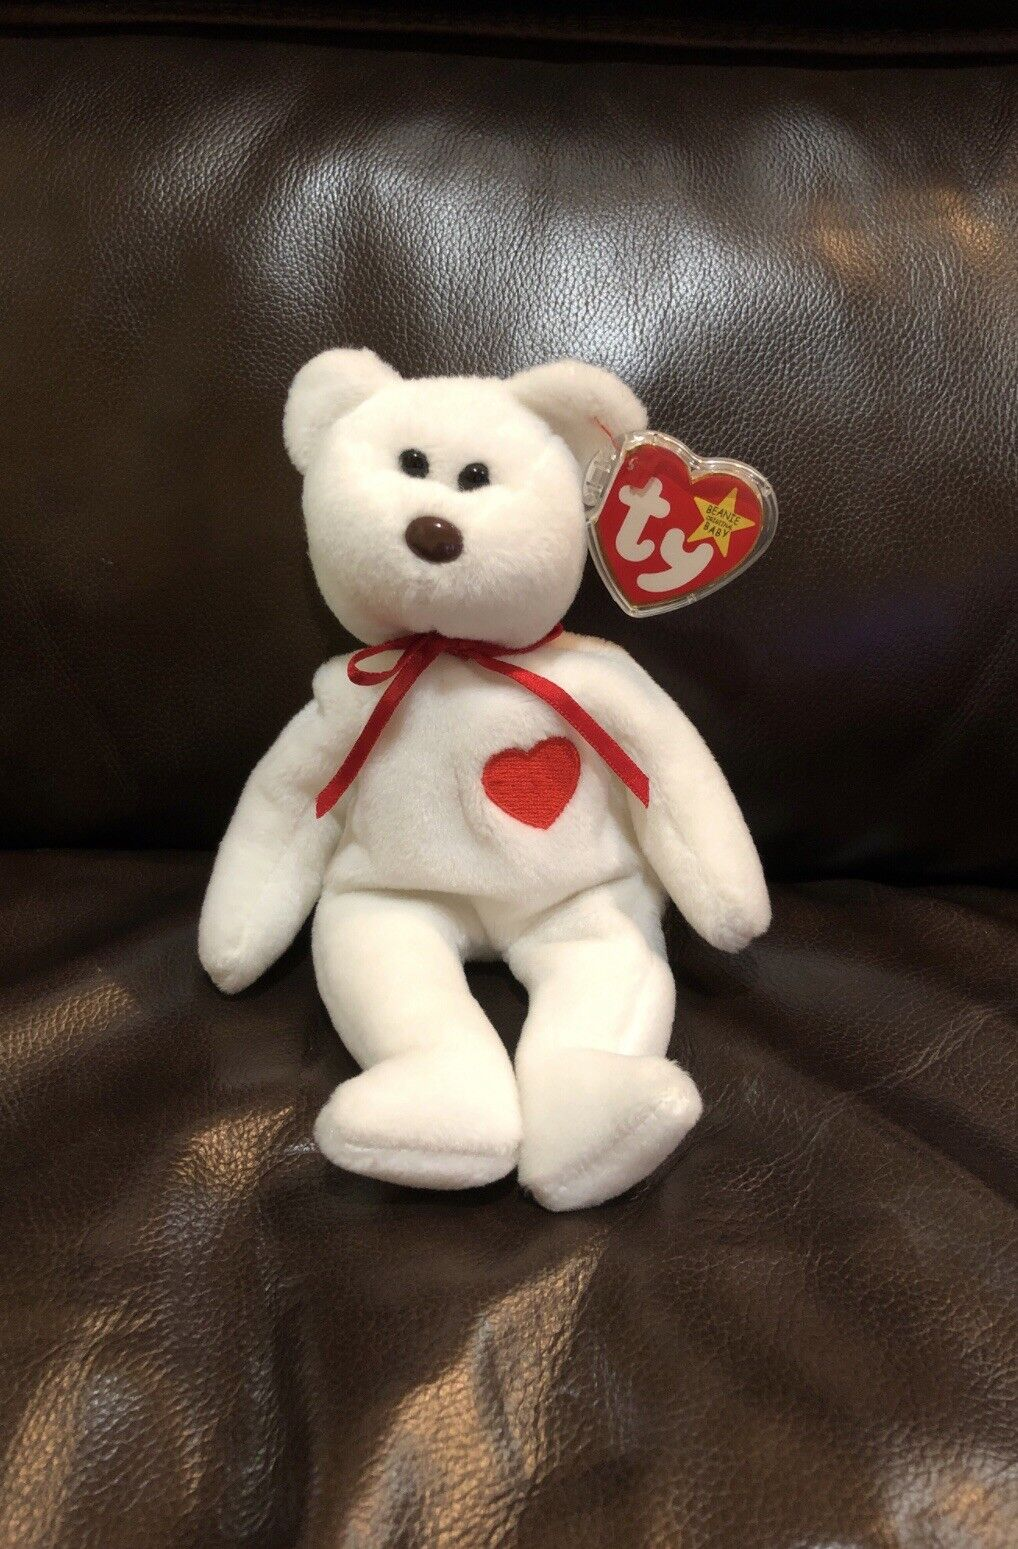 Extremely Rare  VALENTINO 1993 TY INC Beanie Baby with Swing Tag Errors